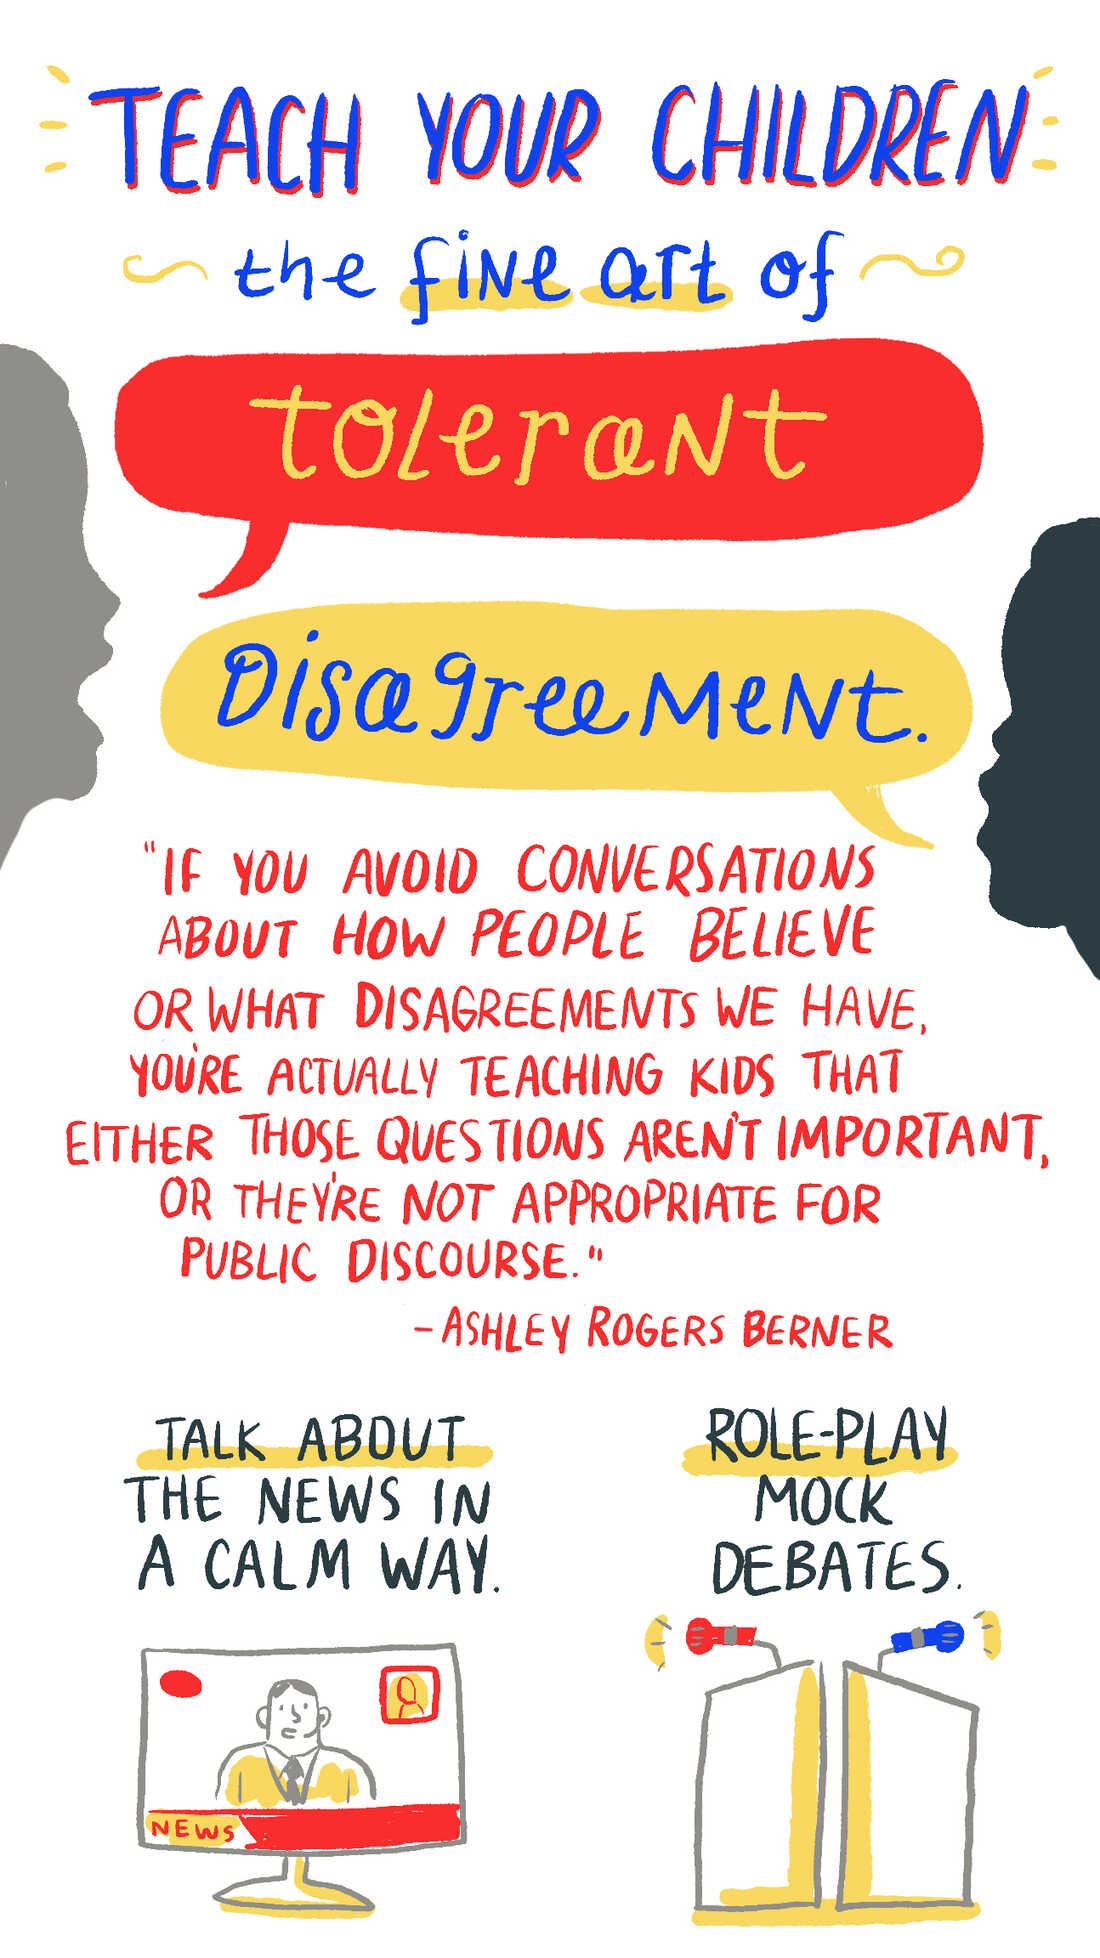 """Teach your children the fine art of tolerant disagreement. """"If you avoid conversations about how people believe or what disagreements we have, you're actually teaching kids that either those questions aren't important, or they're not appropriate for public discourse."""" -Ashley Rogers Berner."""